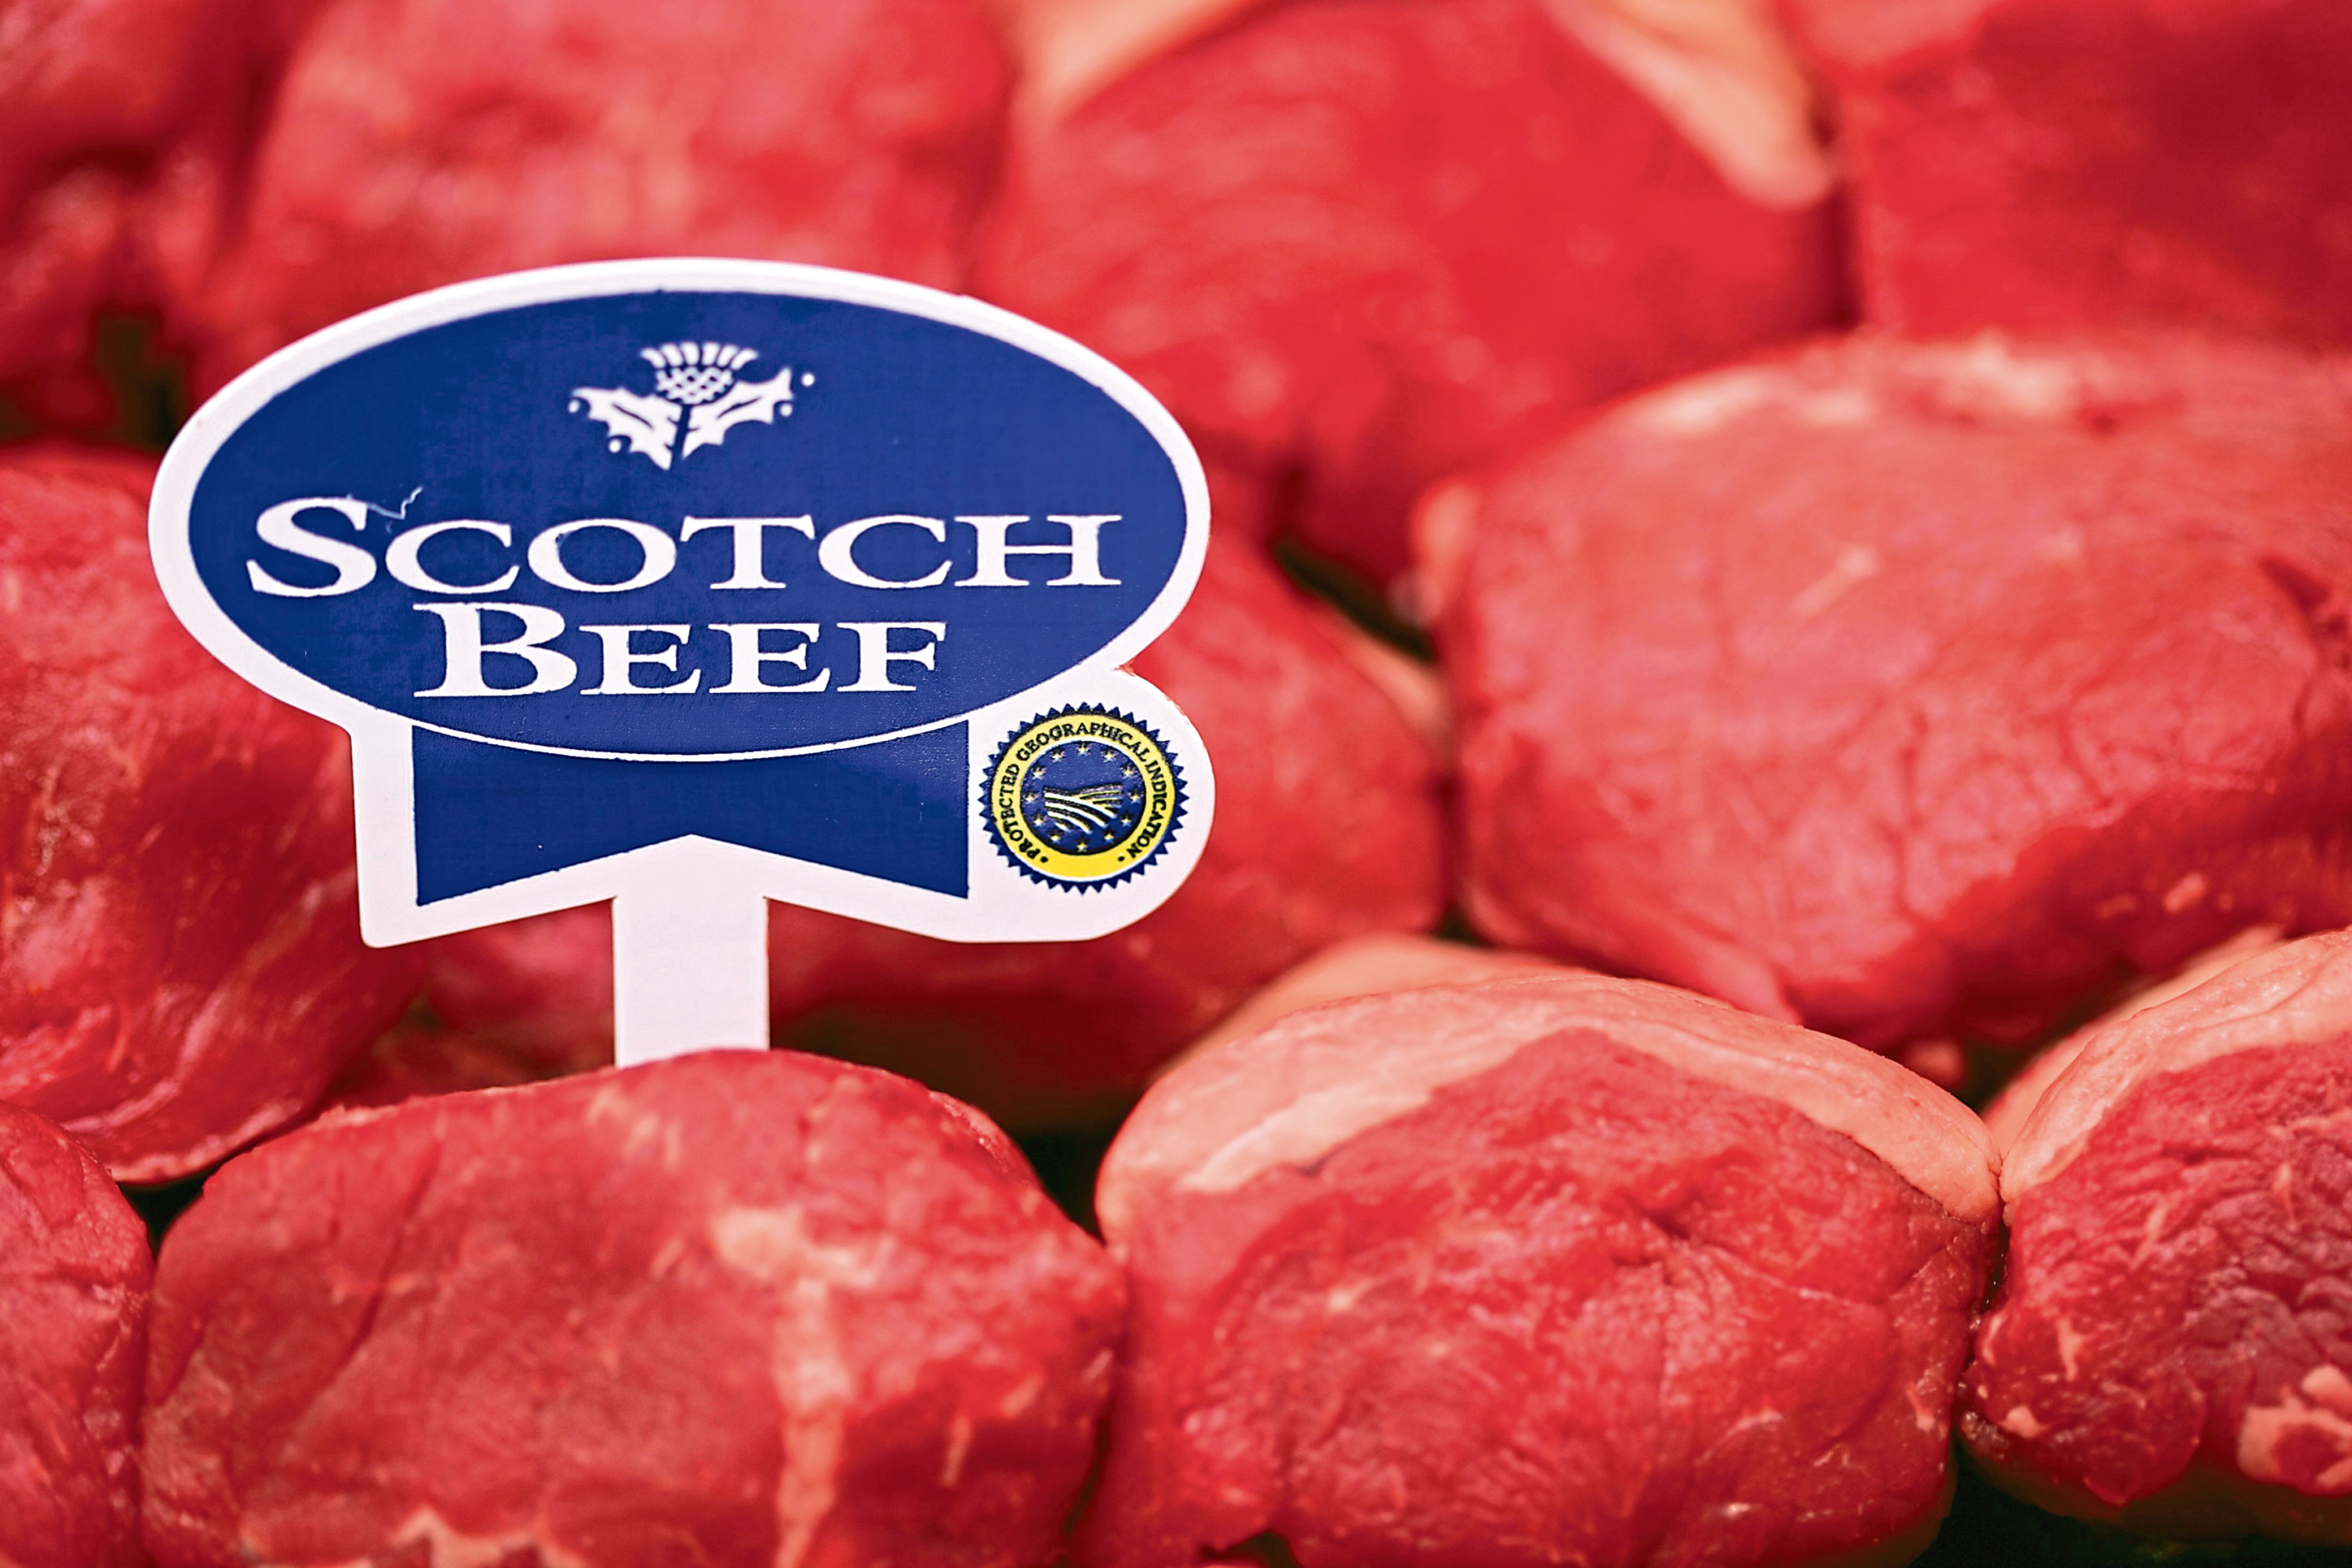 QMS is in discussion with a retailer to form a new Scotch Beef partnership for its English stores.